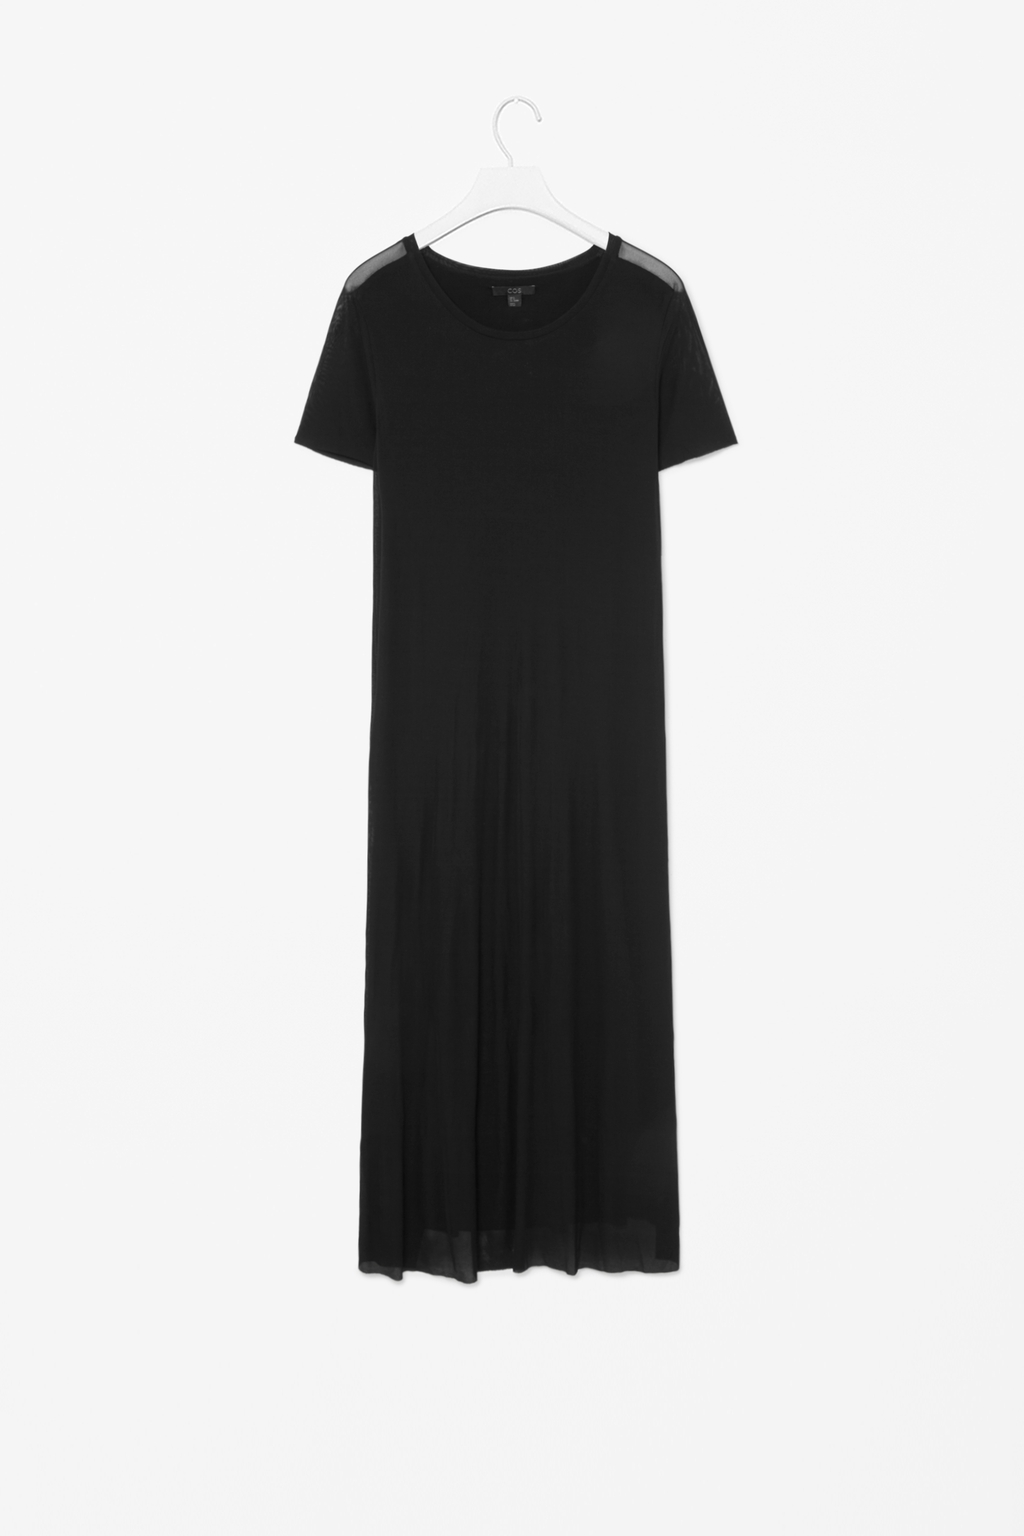 Jersey Sheer Layer - style: t-shirt; length: calf length; neckline: round neck; pattern: plain; predominant colour: black; occasions: casual, evening, creative work; fit: body skimming; fibres: viscose/rayon - 100%; sleeve length: short sleeve; sleeve style: standard; pattern type: fabric; texture group: jersey - stretchy/drapey; season: s/s 2014